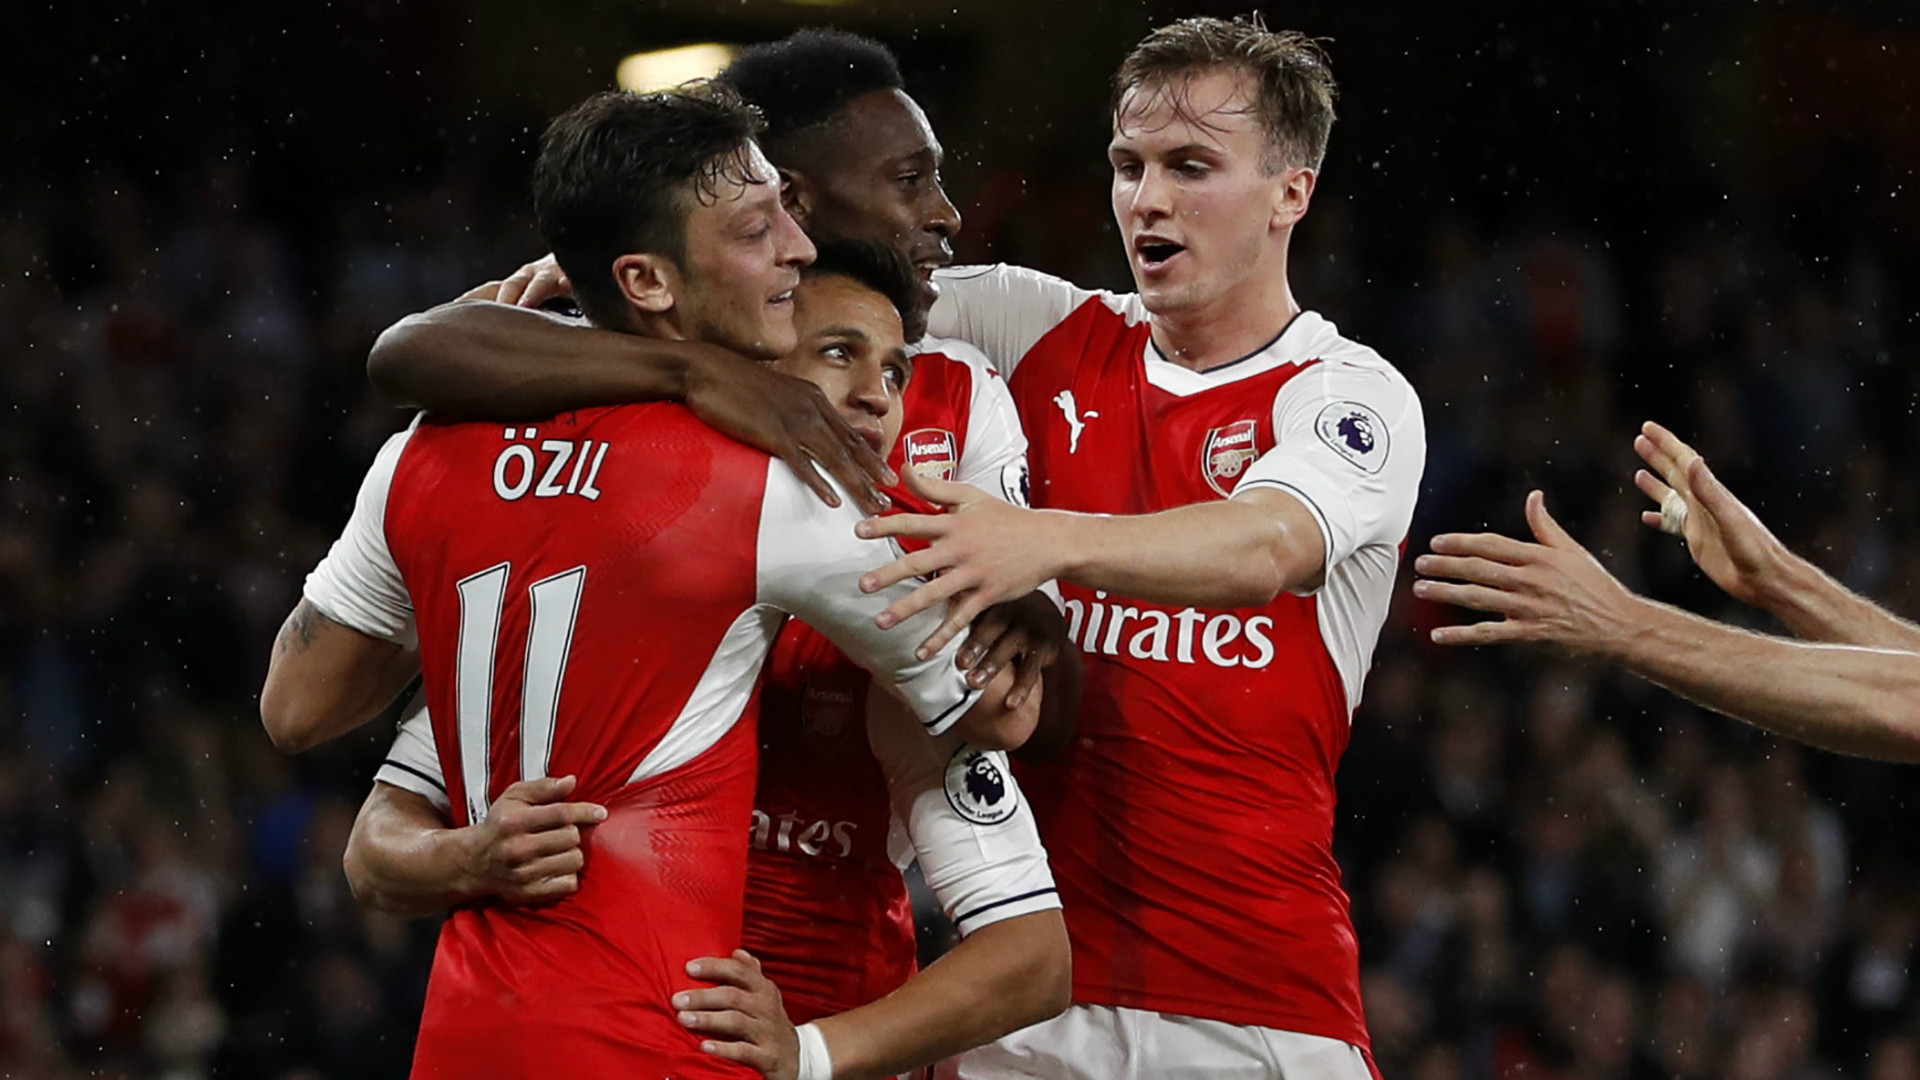 Could Arsenal & Liverpool face a Champions League play-off?